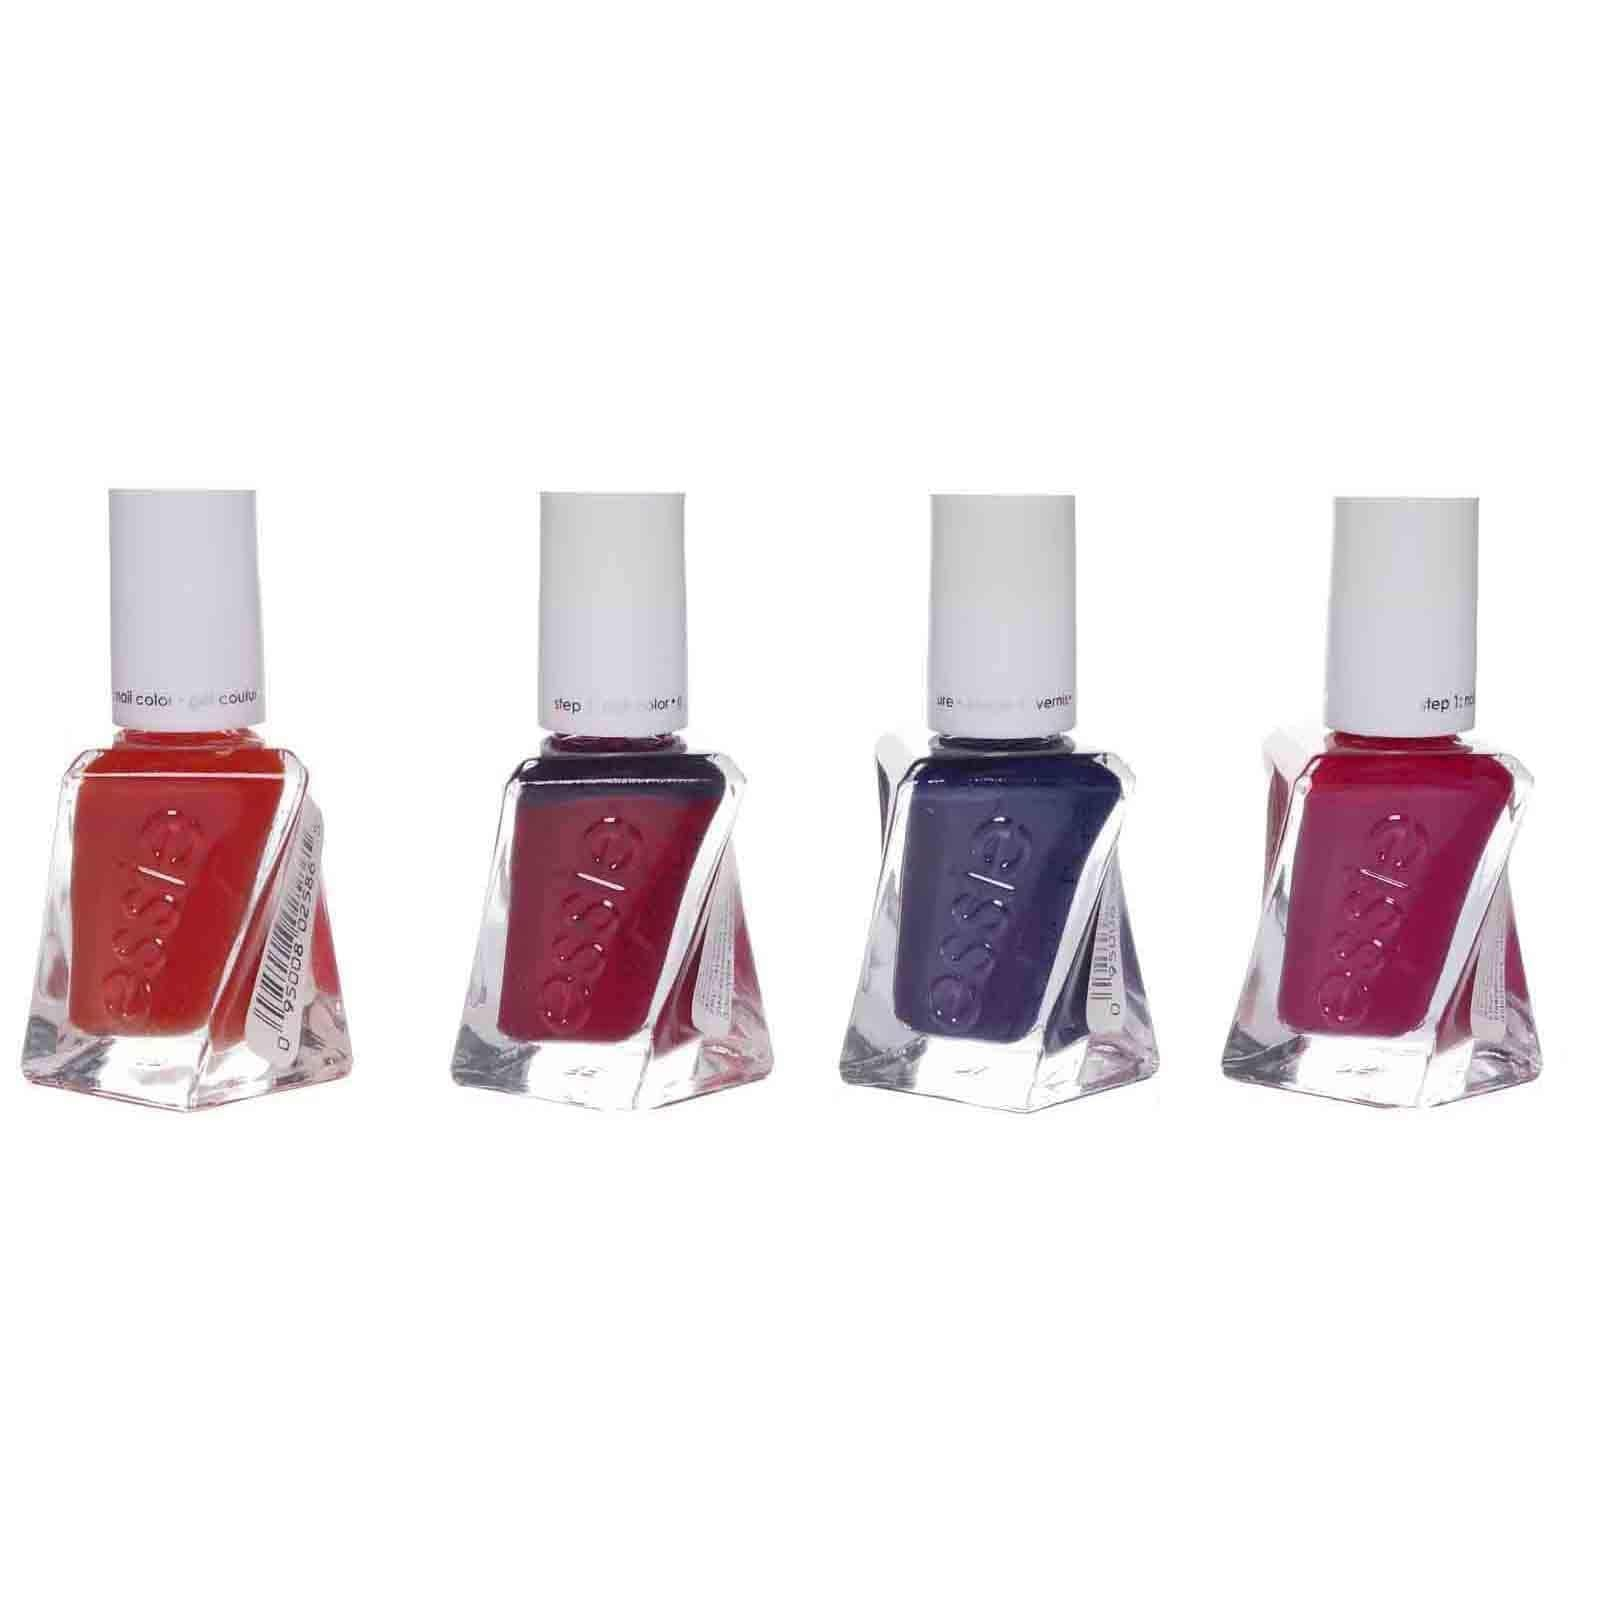 Essie Gel Couture Nail Polish, - Assorted Shades 24 Units (24/cs)